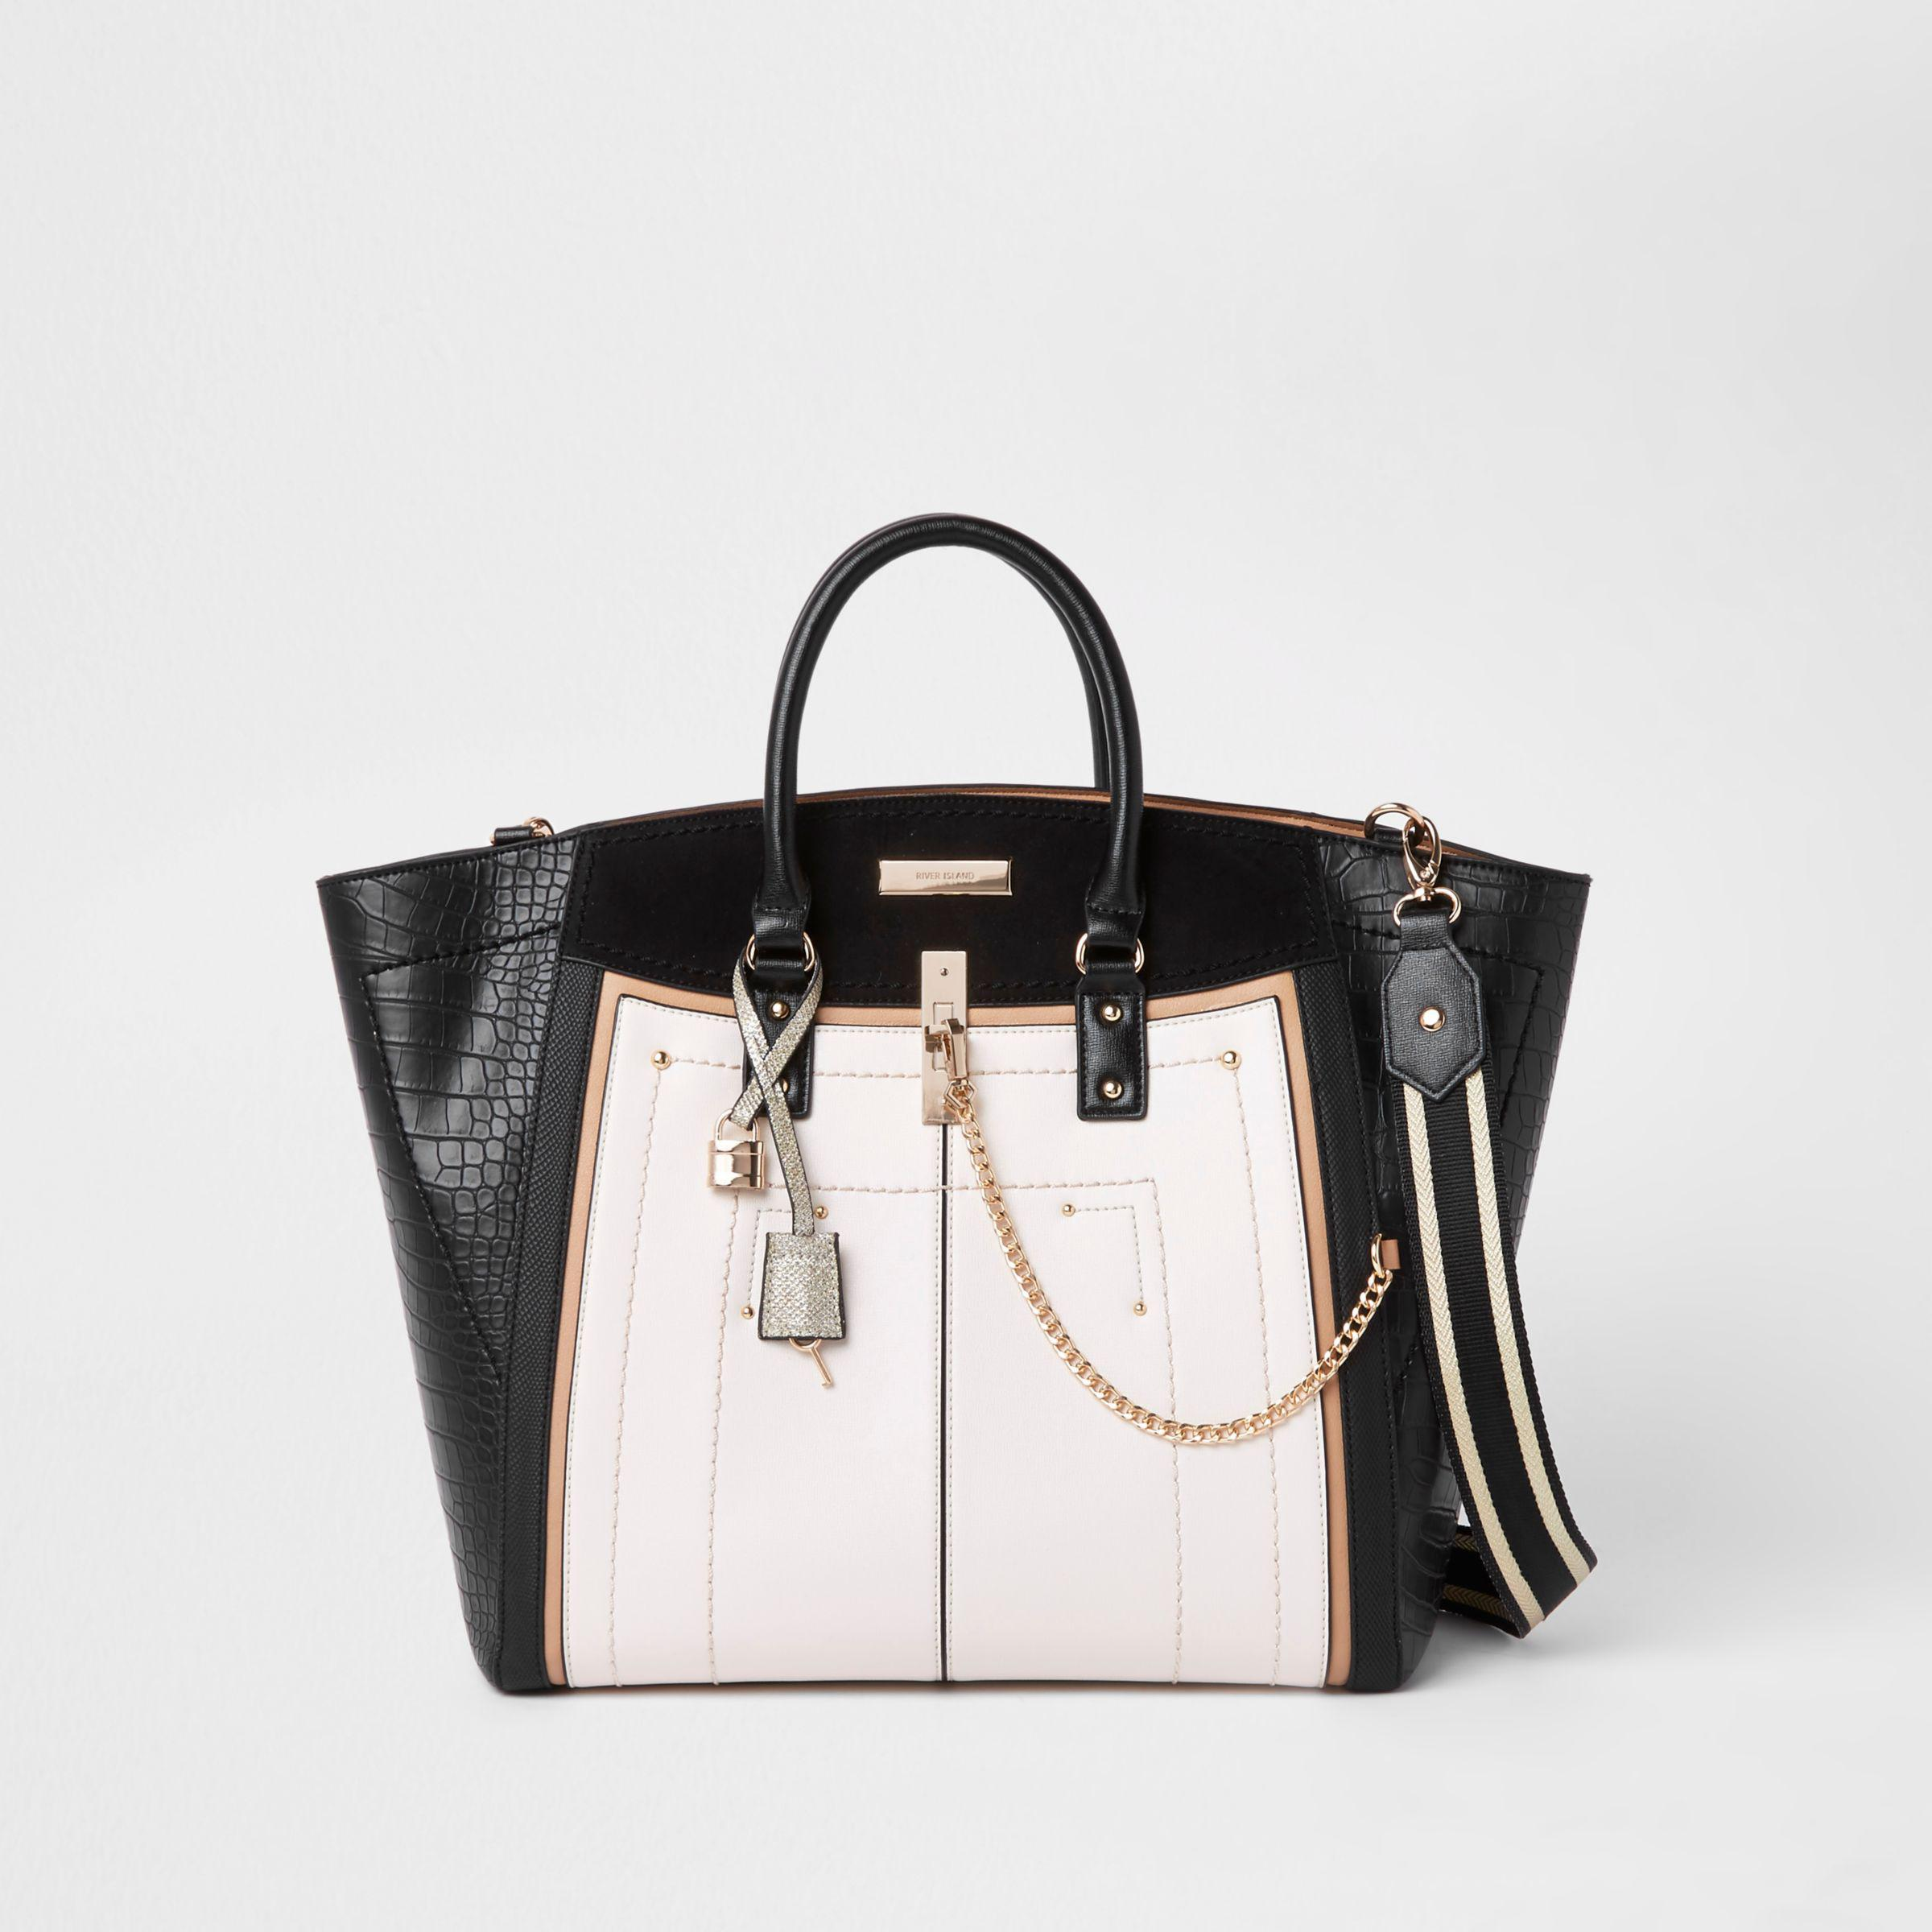 e8396d79c6 Lyst - River Island Black Large Winged Contrast Tote Bag in Black